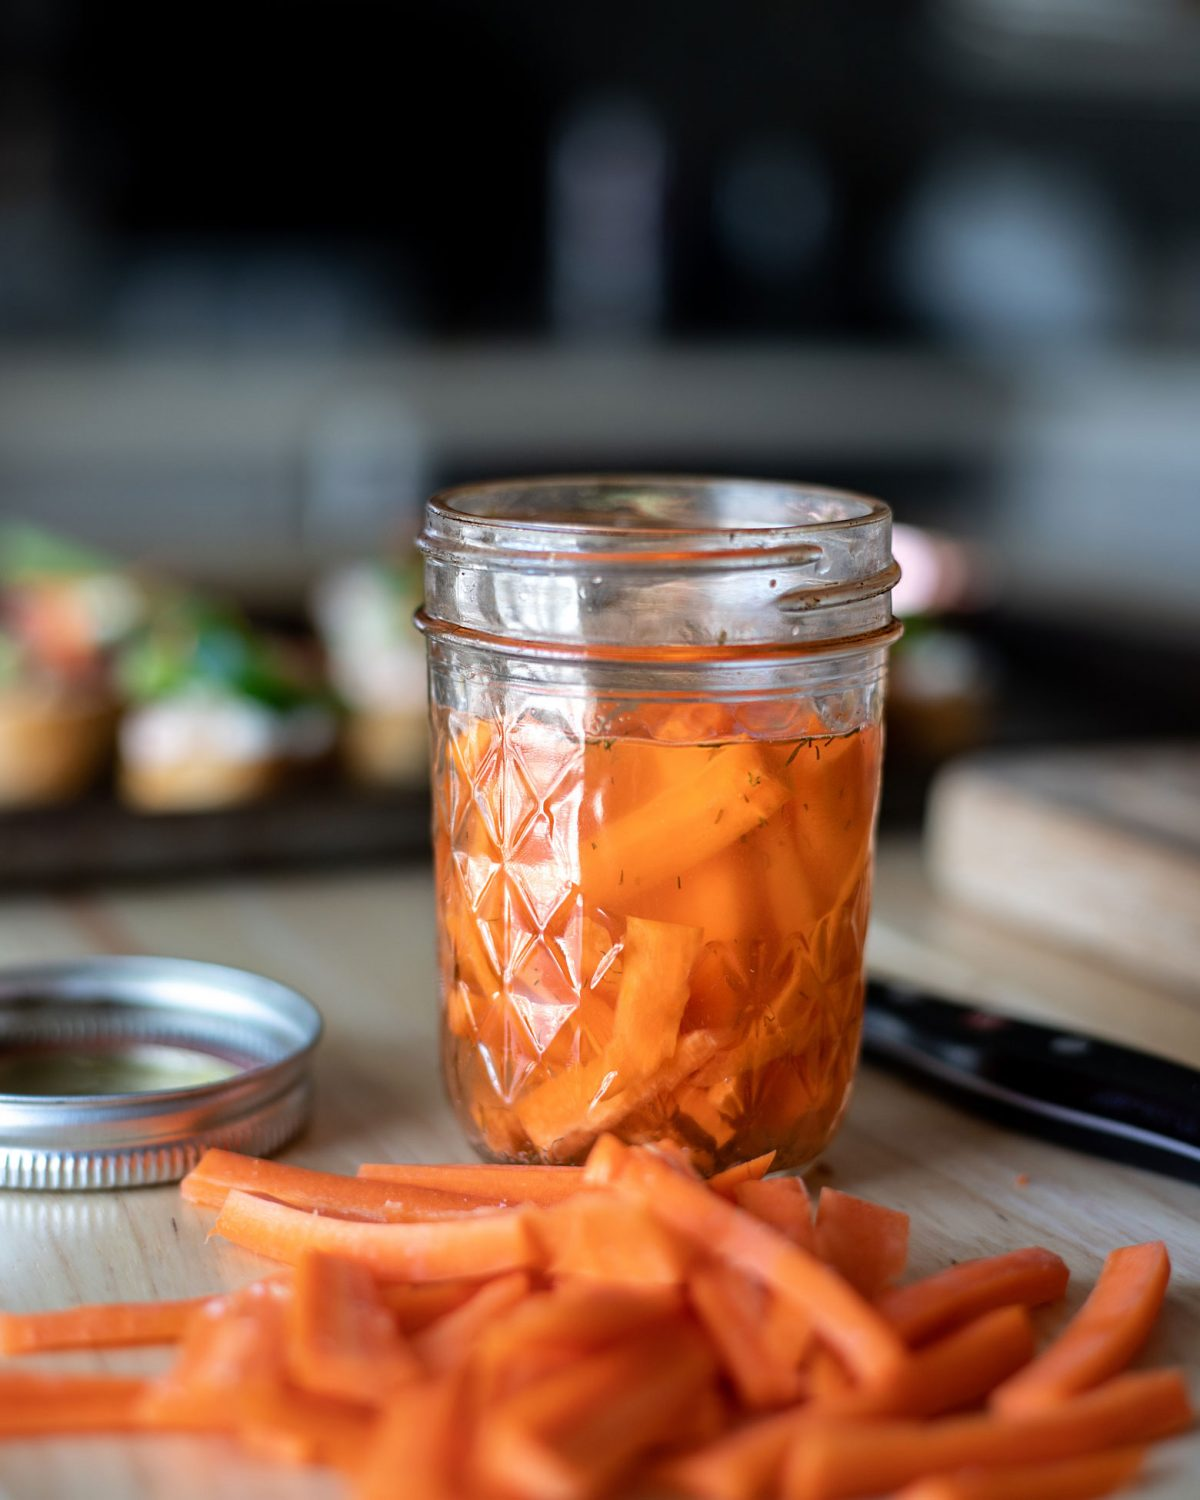 These quick pickled carrots come together in 2 hours and are perfect for banh mi or bloody marys. This quick pickling method can be used for multiple vegetables for an easy at home pickling. #Pickling #EasyRecipe #QuickRecipe #Carrots #Canning #ElleTalk